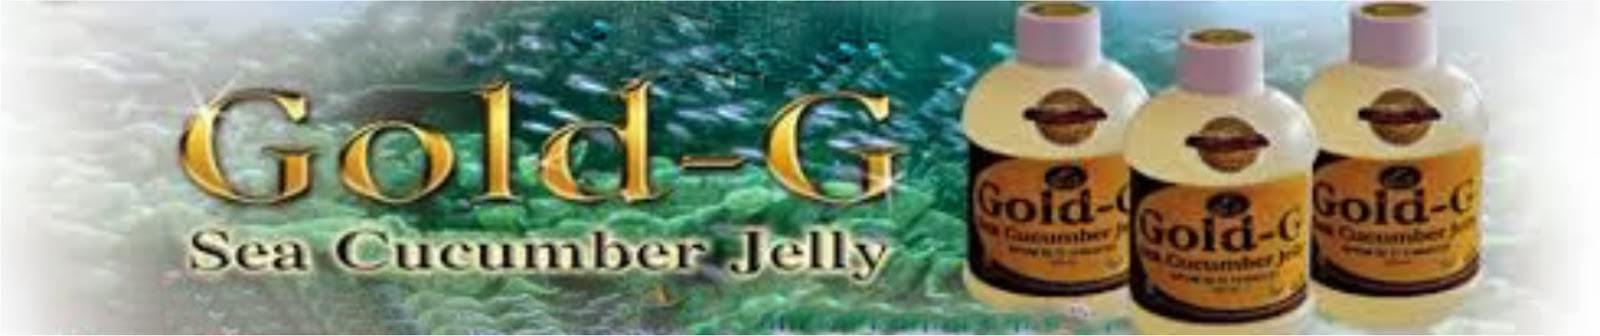 Jelly Gamat Gold-G Sea Cucumber